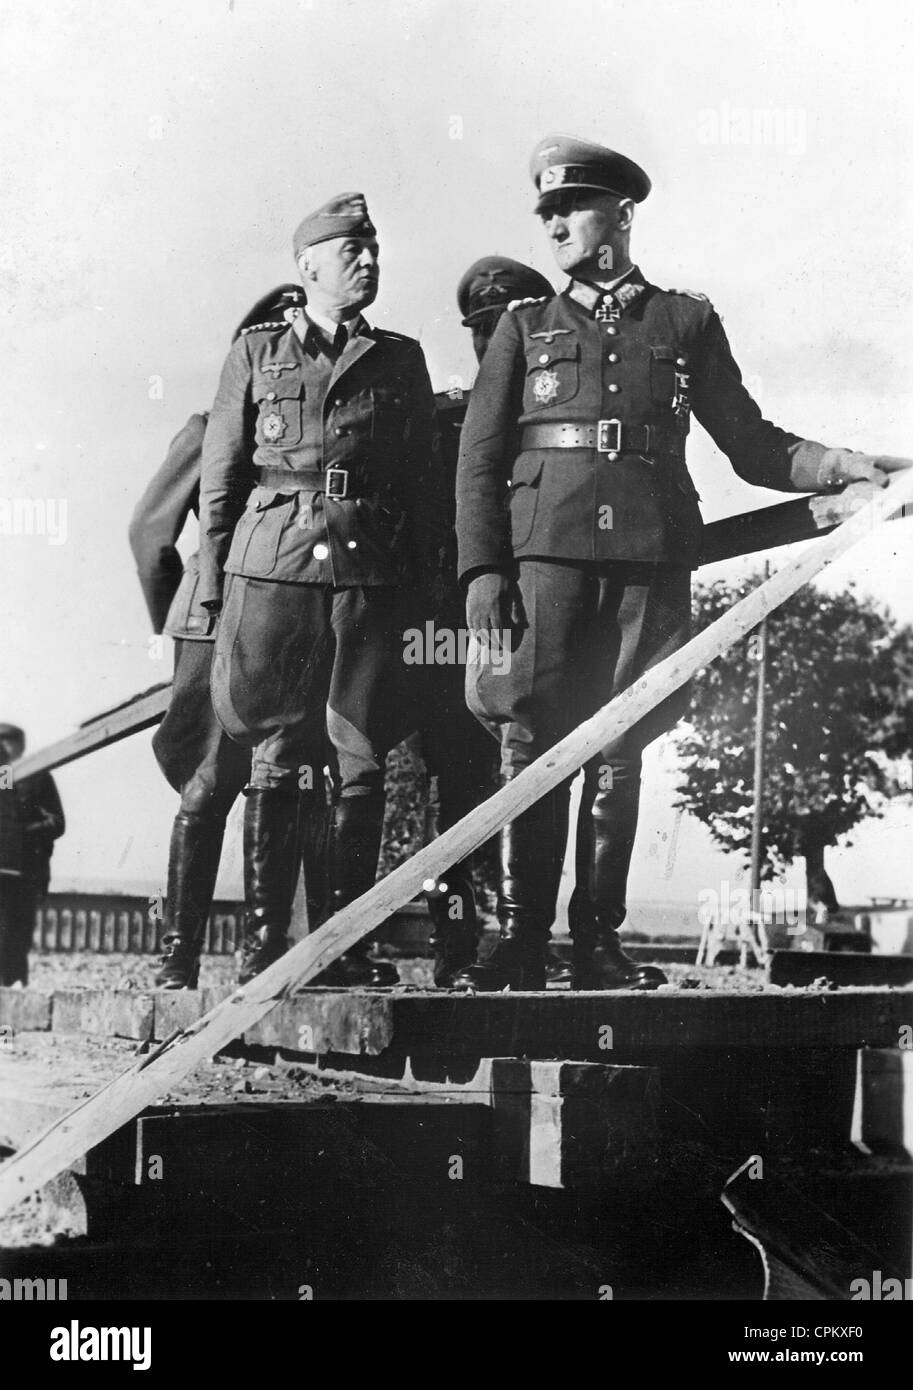 General Friedrich Wiese in southern France, 1944 - Stock Image